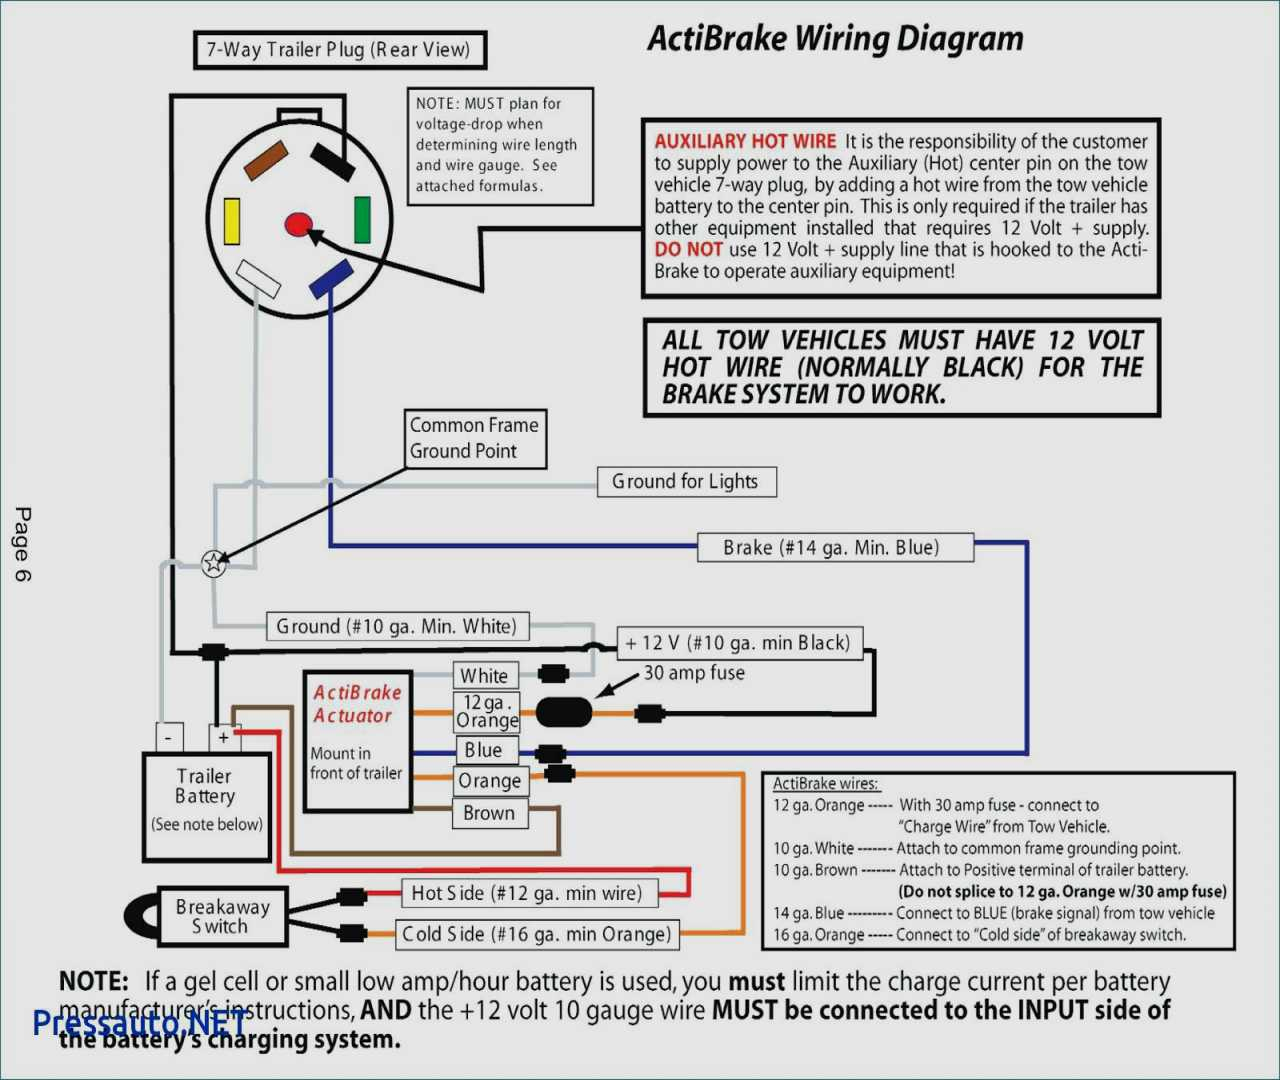 Mirage Trailer Wiring Diagram | Wiring Diagram - Trailer Wiring Diagram Australia